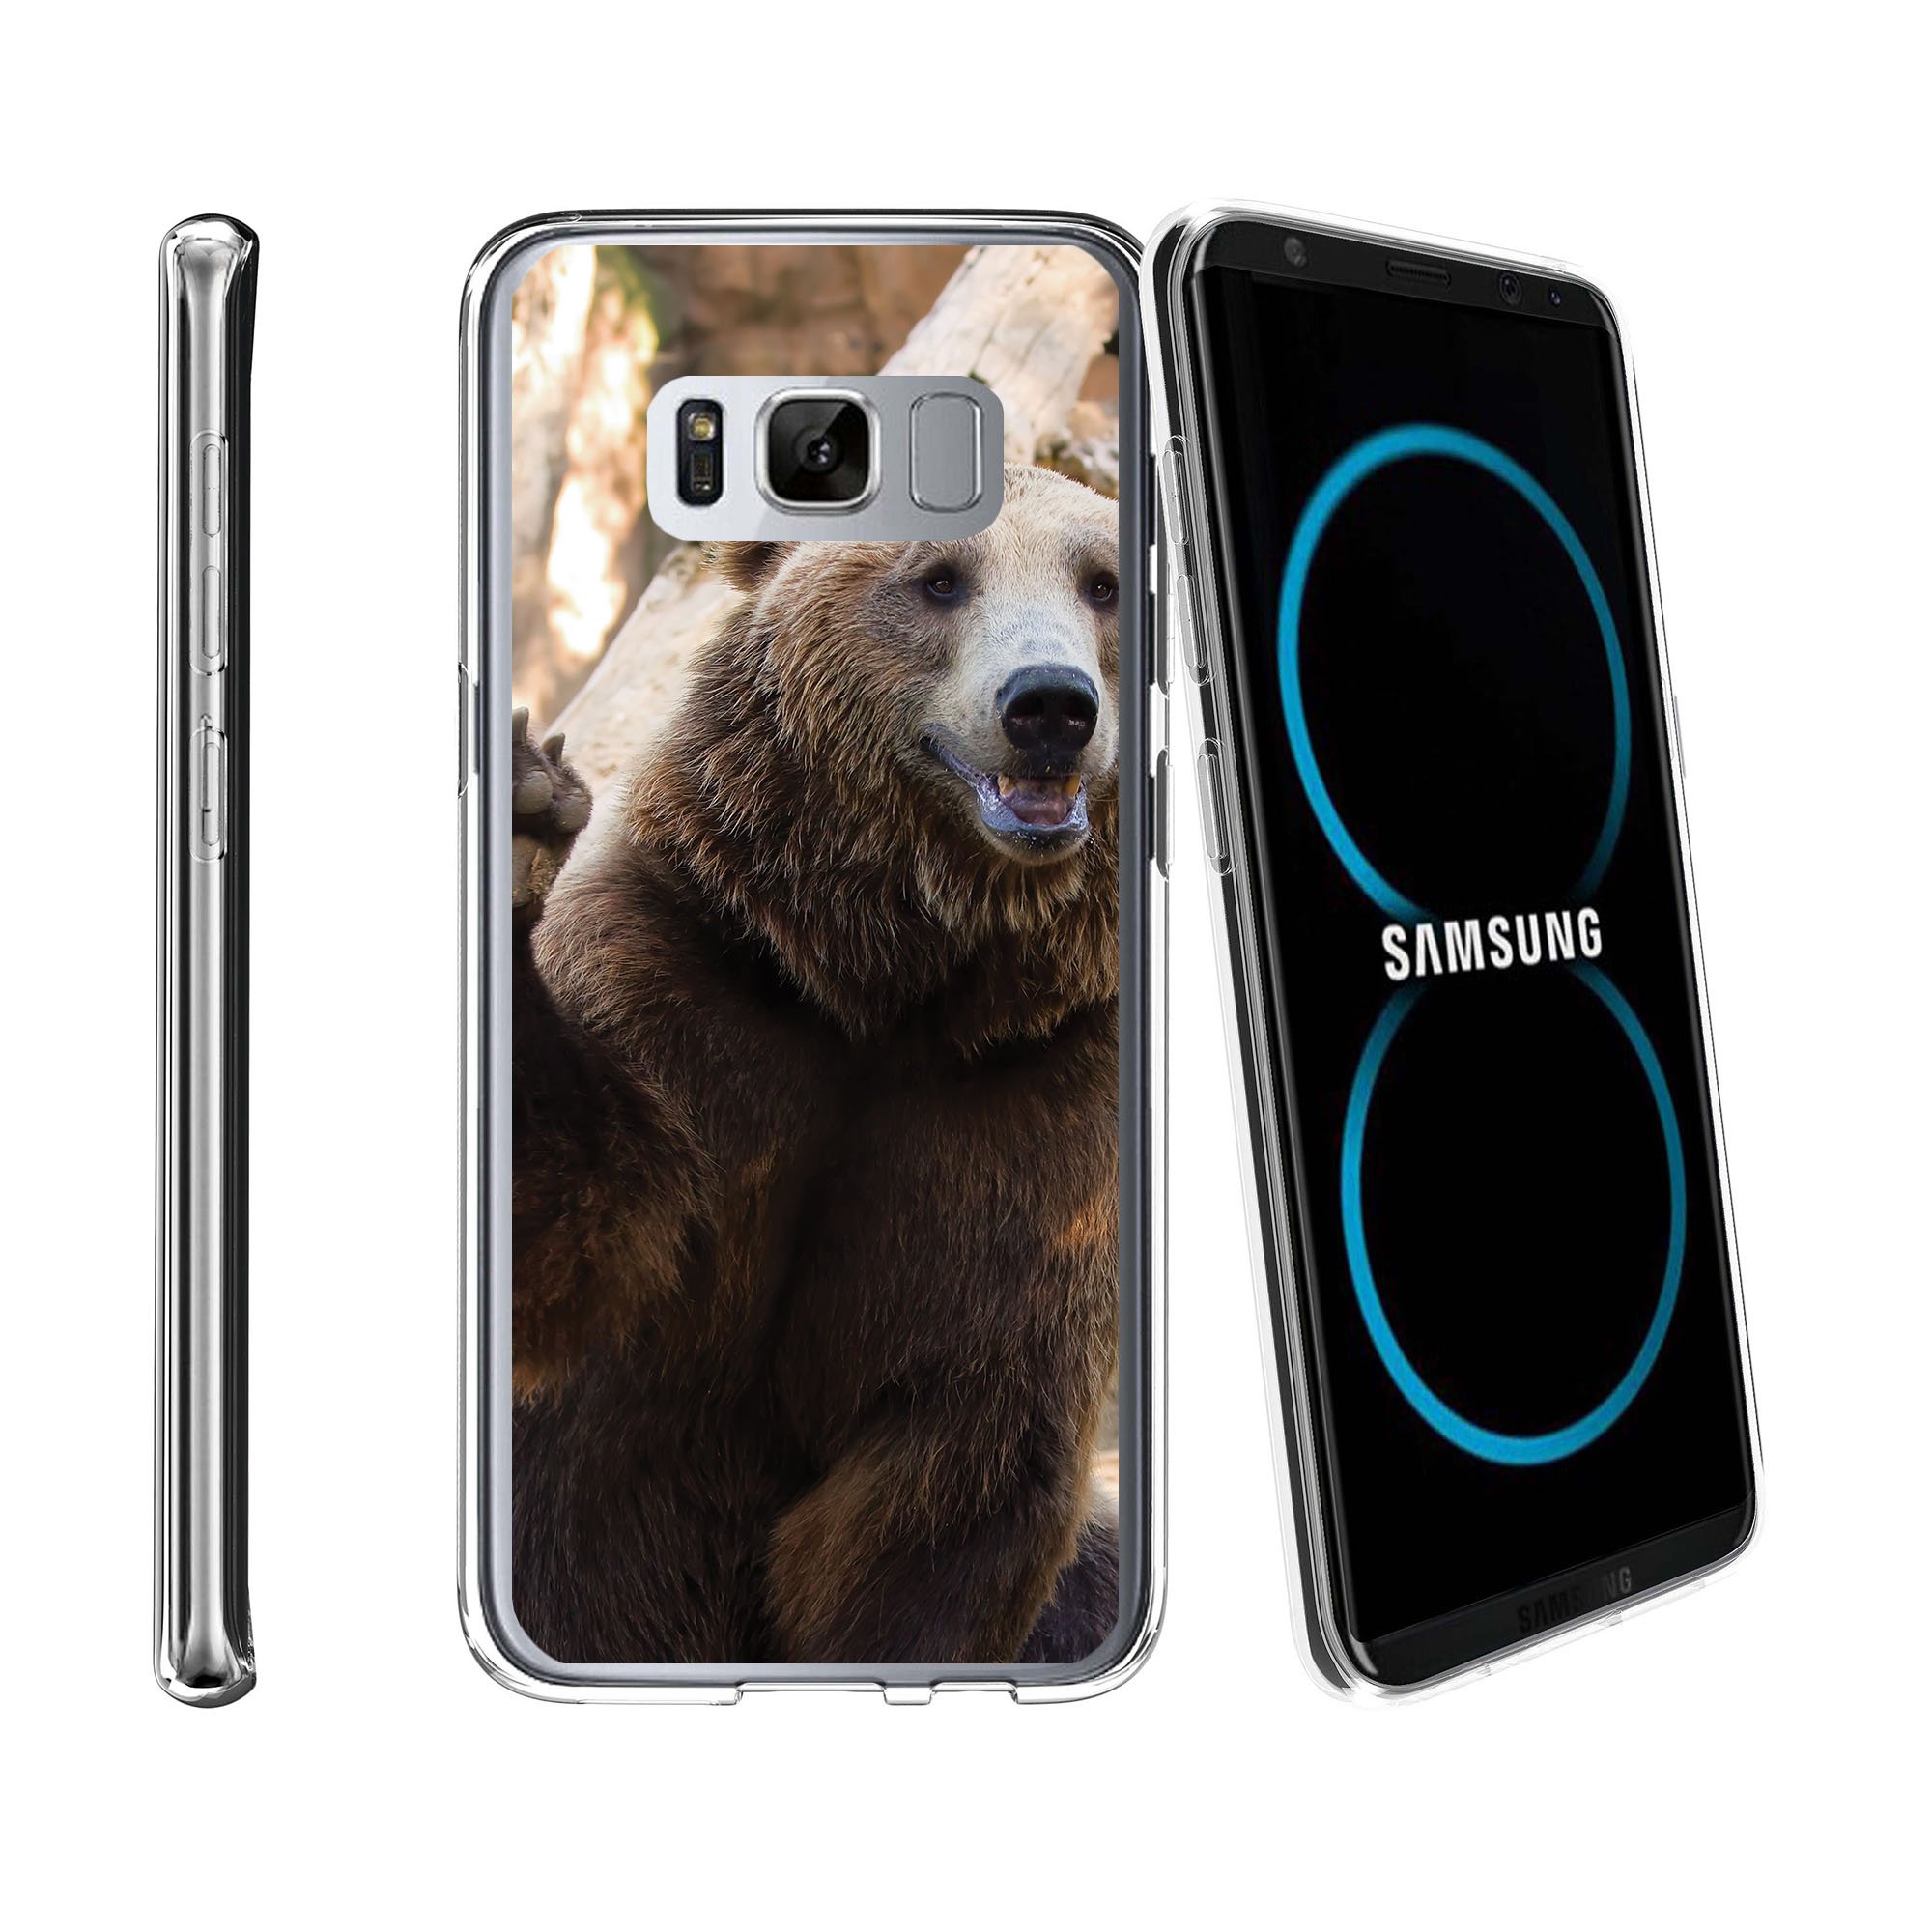 Case for Samsung Galaxy S8 Plus | Galaxy S8 Plus Transparent Silicone Case [ Flex Force ] Flexible Clear Case Cute Animals Collection